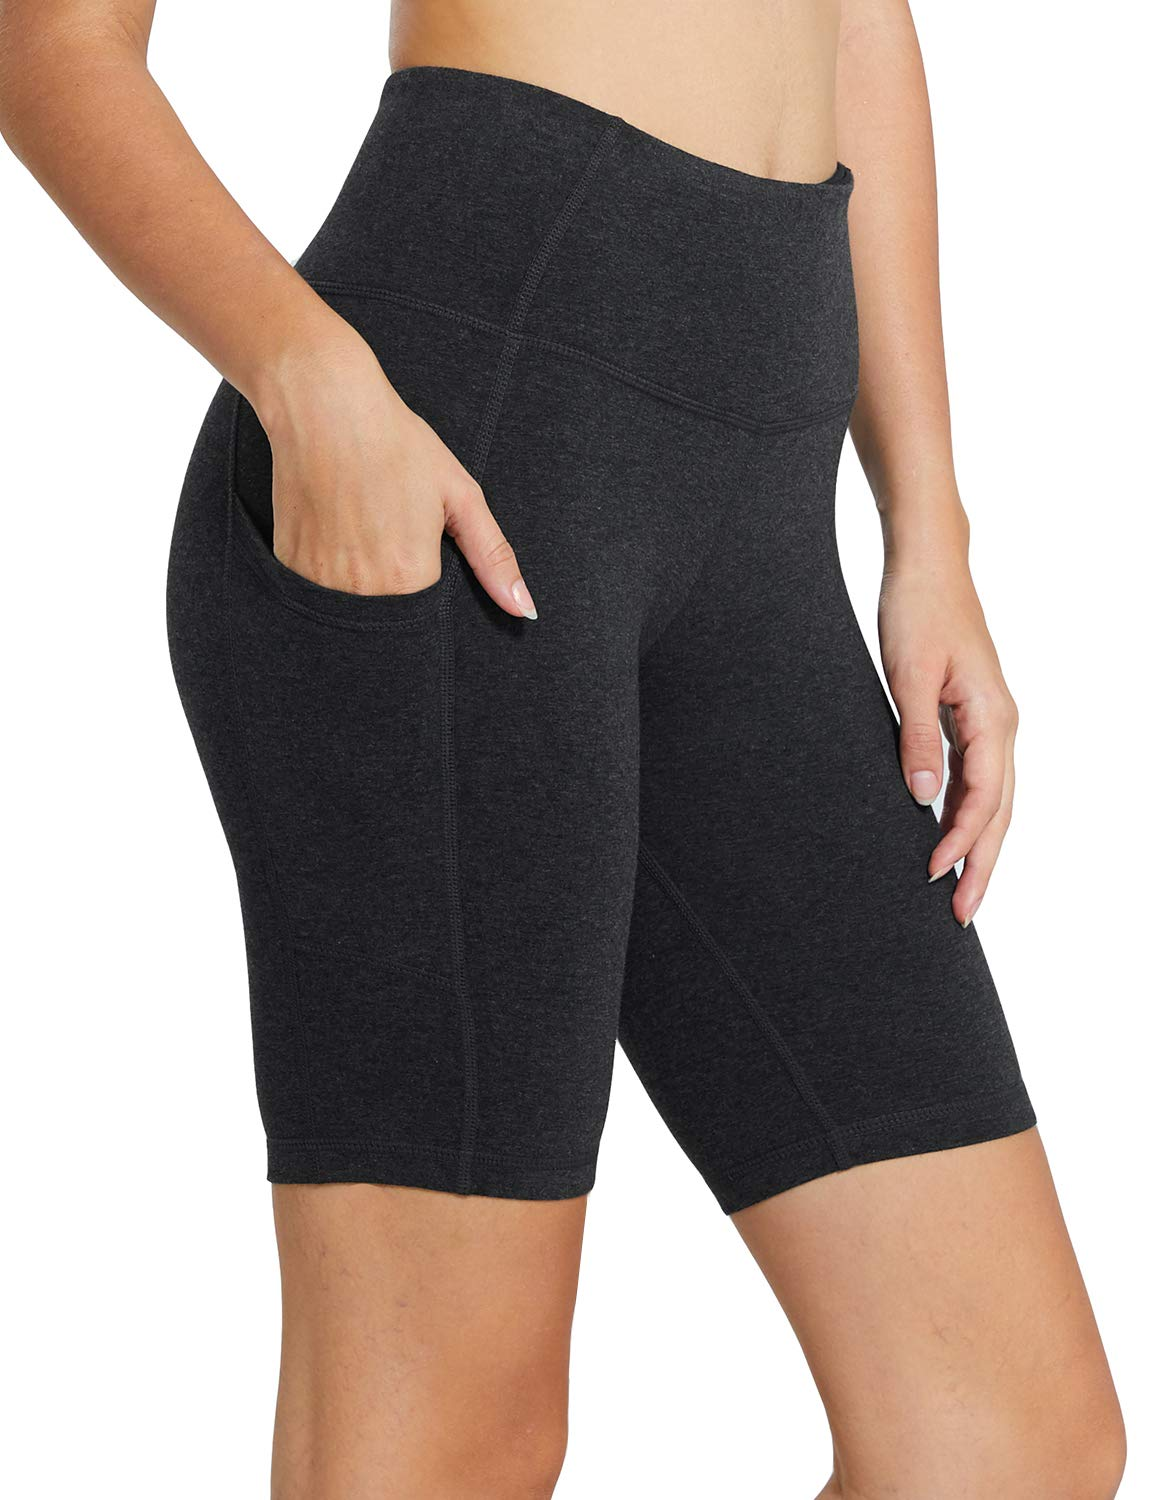 Baleaf Women's 8'' High Waist Workout Yoga Shorts Tummy Control Side Pockets Charcoal Size L by Baleaf